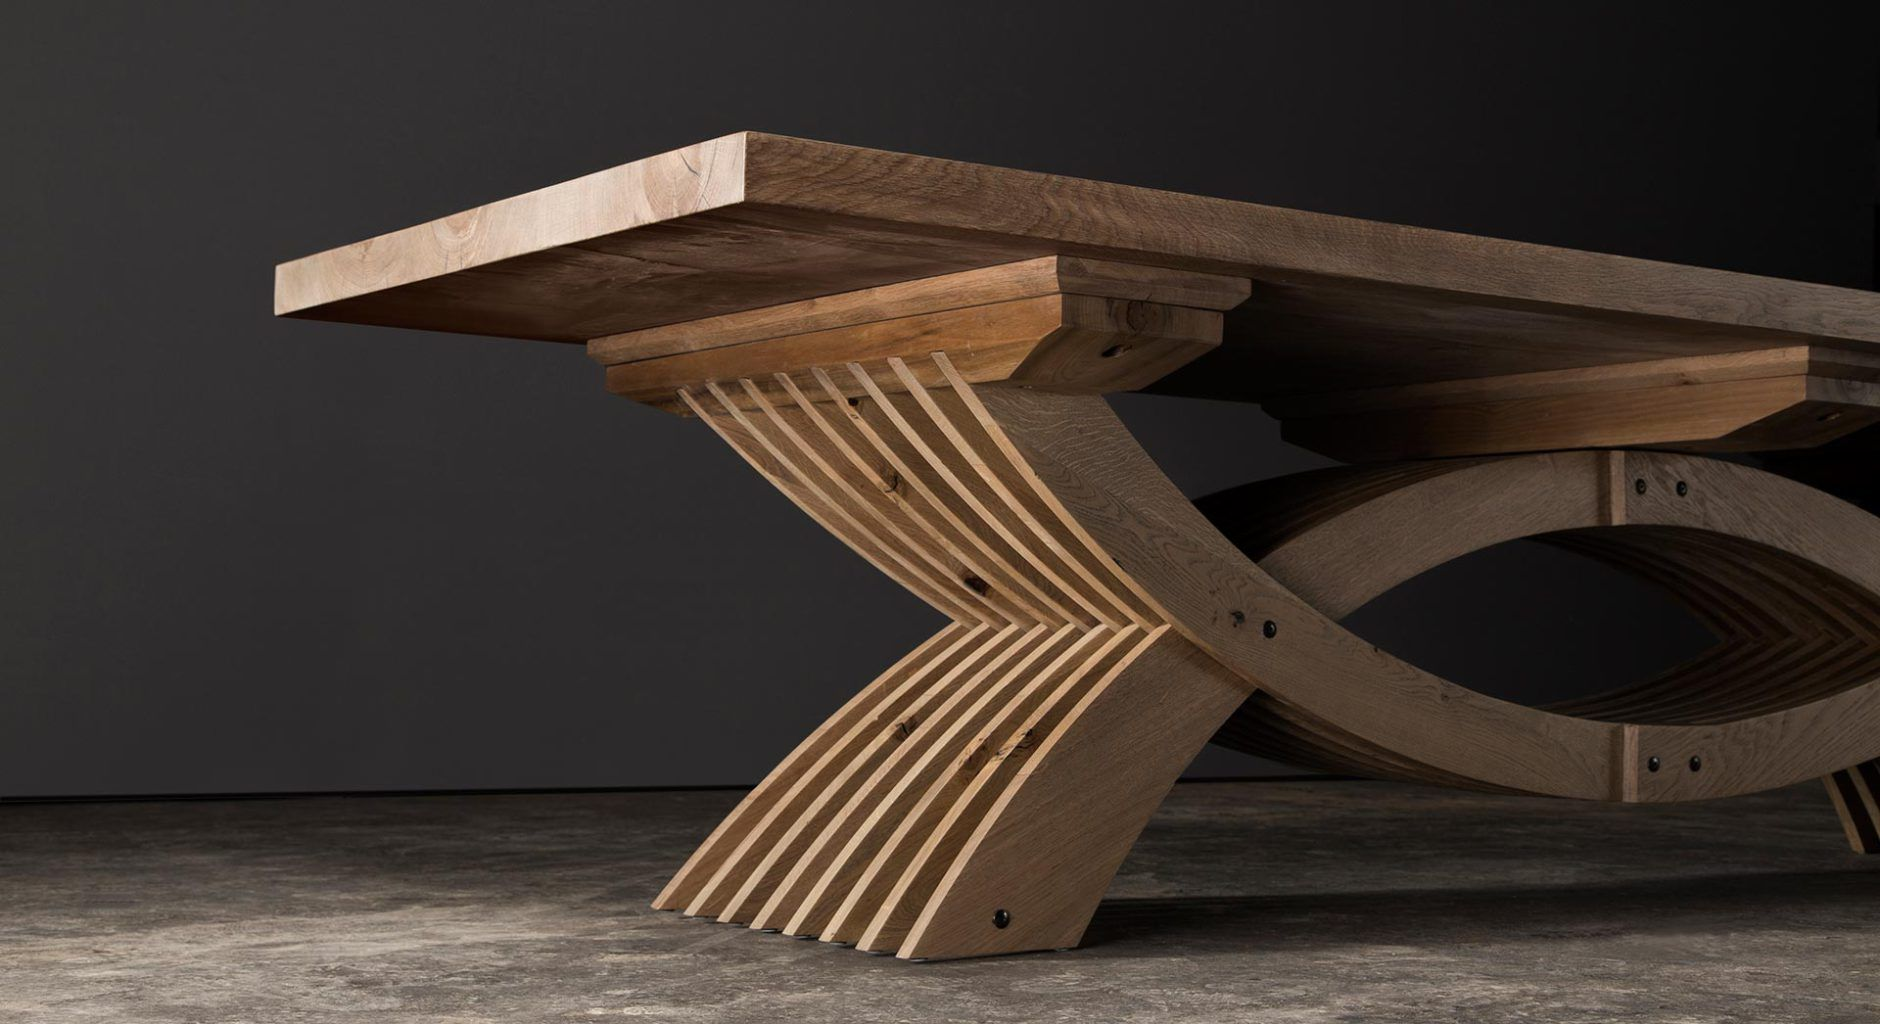 Pierre Cronje sets the benchmark in handcrafted quality and bespoke furniture design, solid wood flooring and architectural fittings